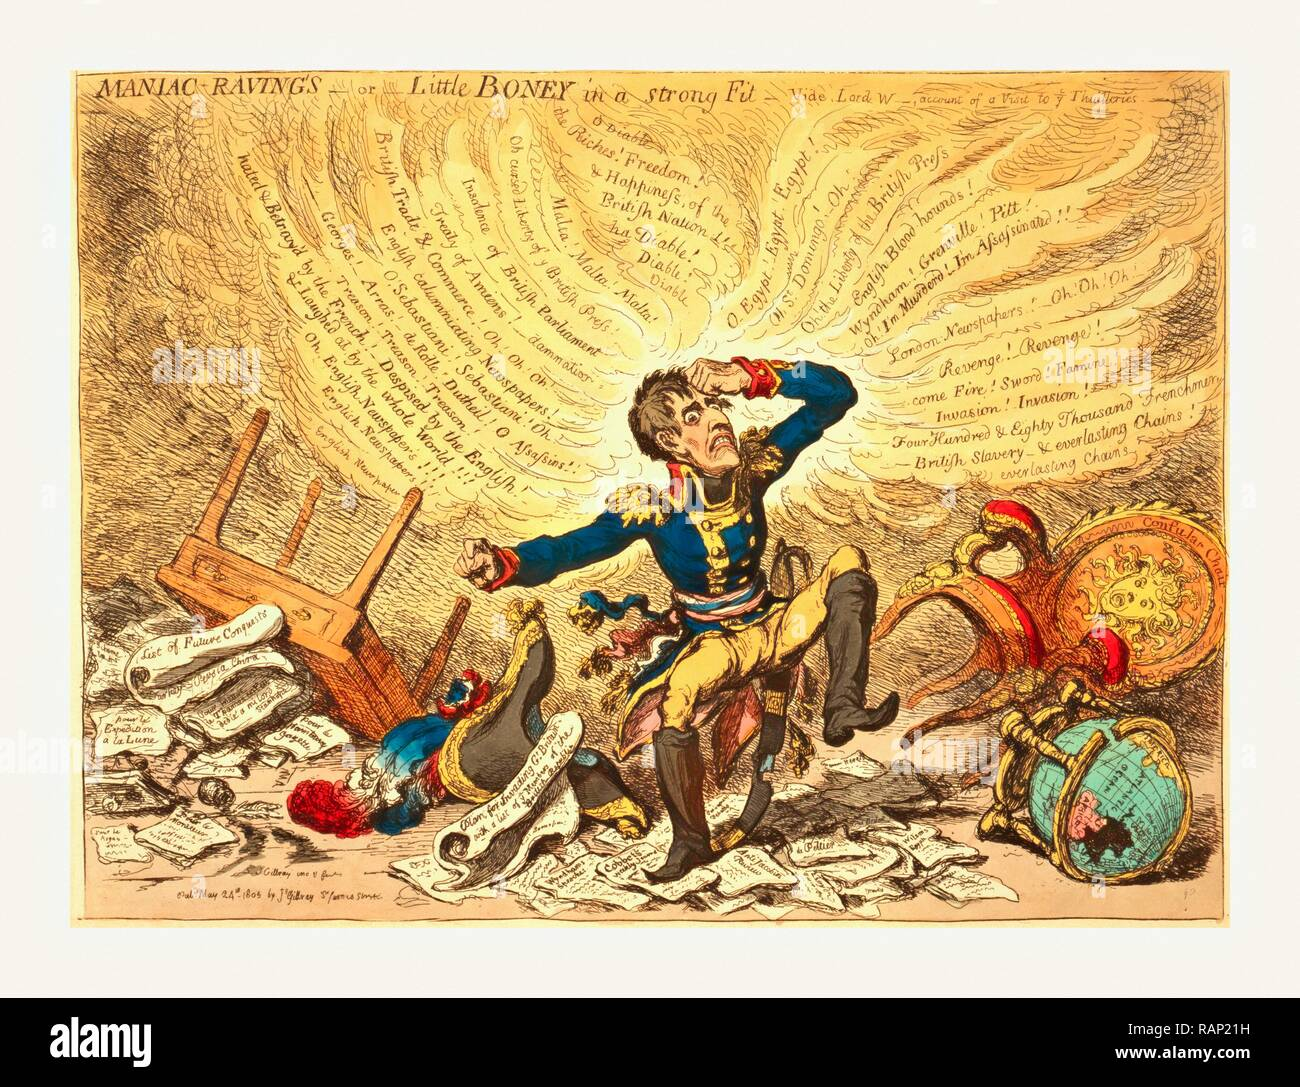 Maniac-raving's or Little Boney in a strong fit, Gillray, James, 1756-1815, engraver, London, 1803, Napoleon in a reimagined - Stock Image